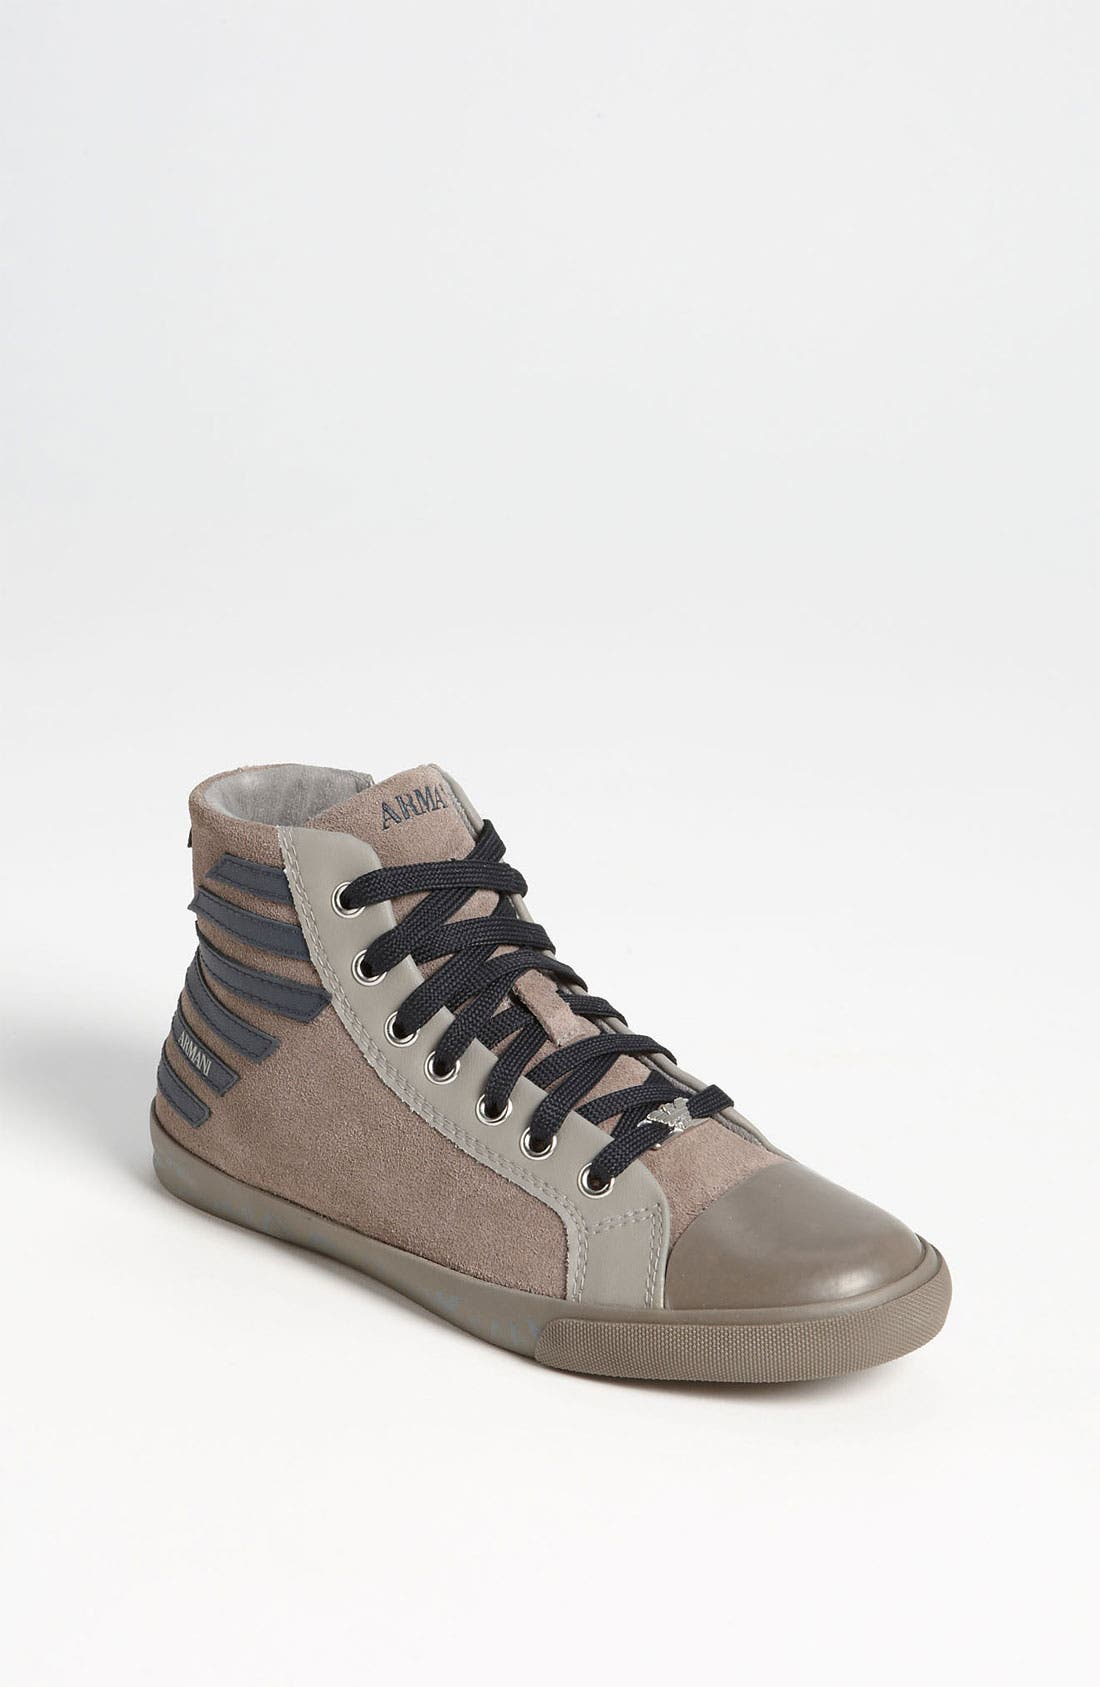 Main Image - Armani Junior 'Eagle' Sneaker (Toddler, Little Kid & Big Kid)